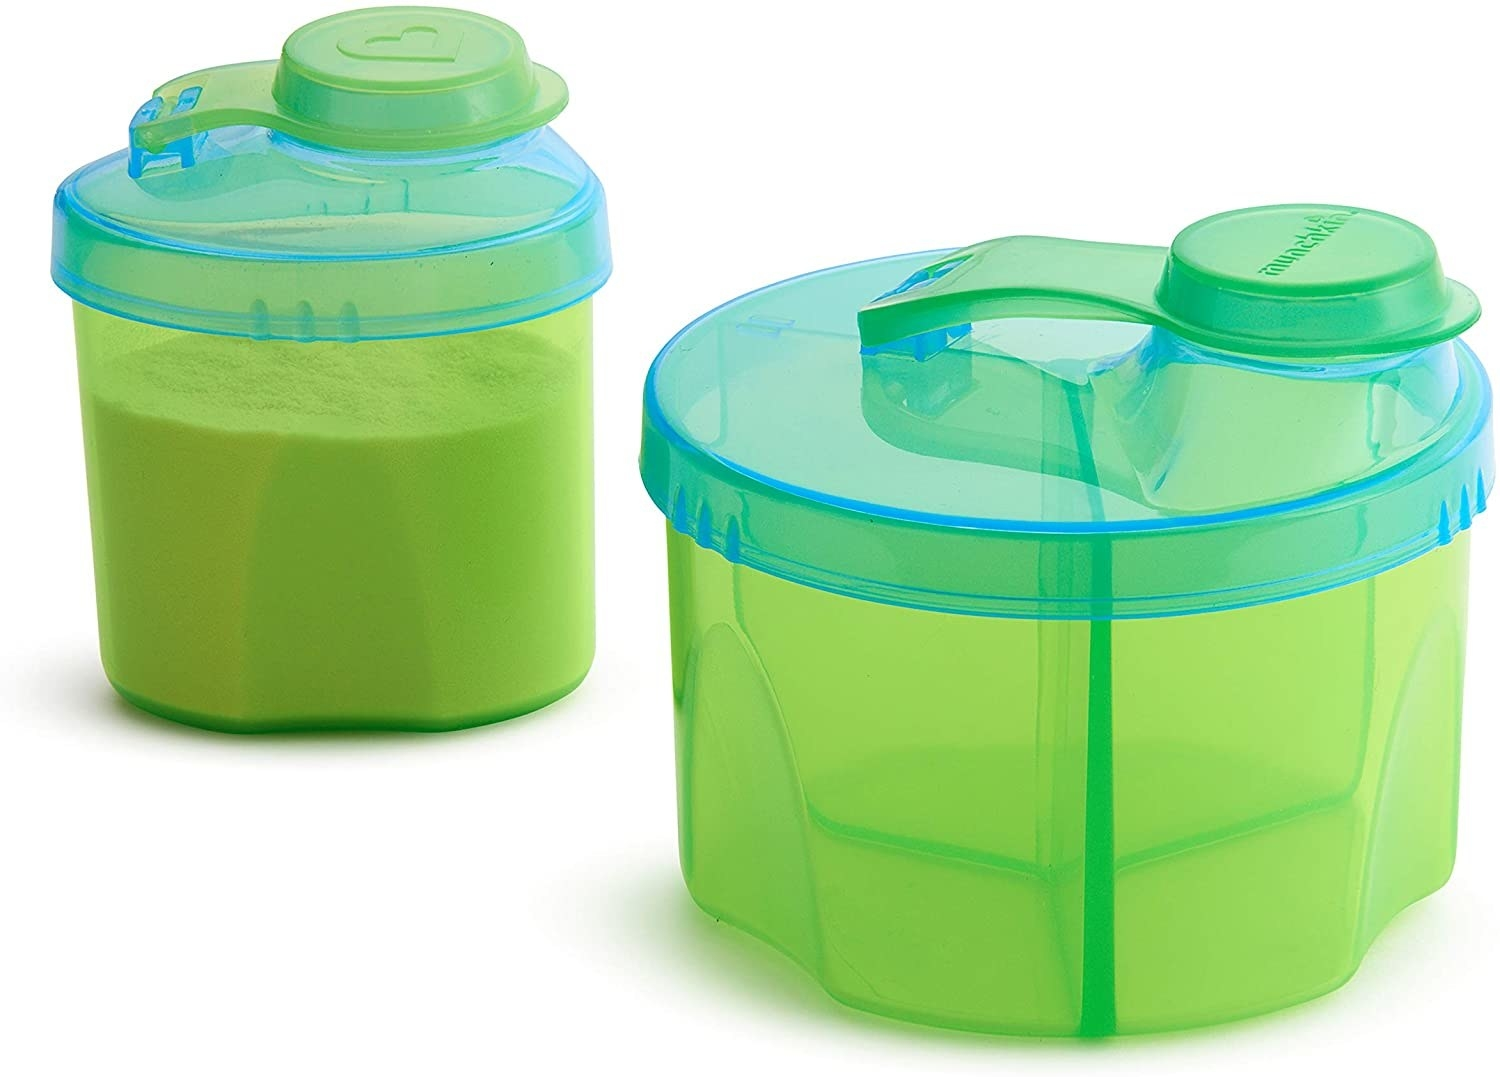 A small baby formula container with three compartments